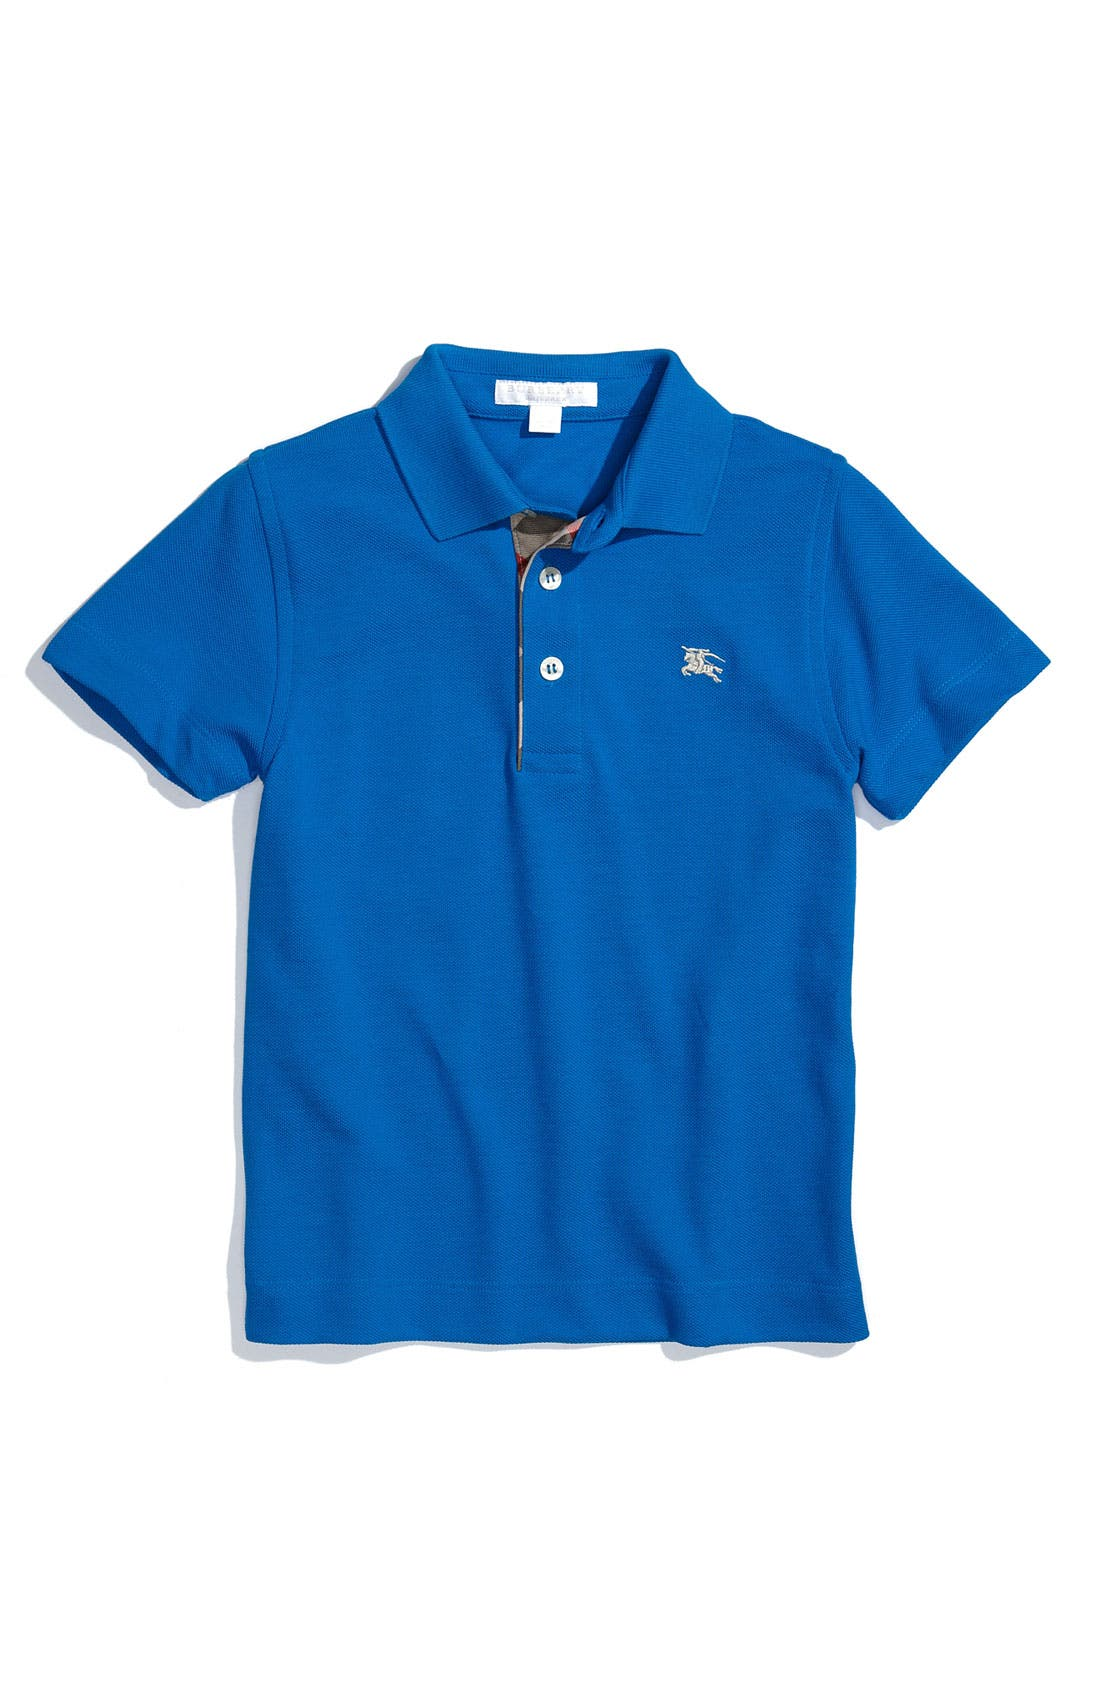 Main Image - Burberry Short Sleeve Piqué Polo (Little Boys)